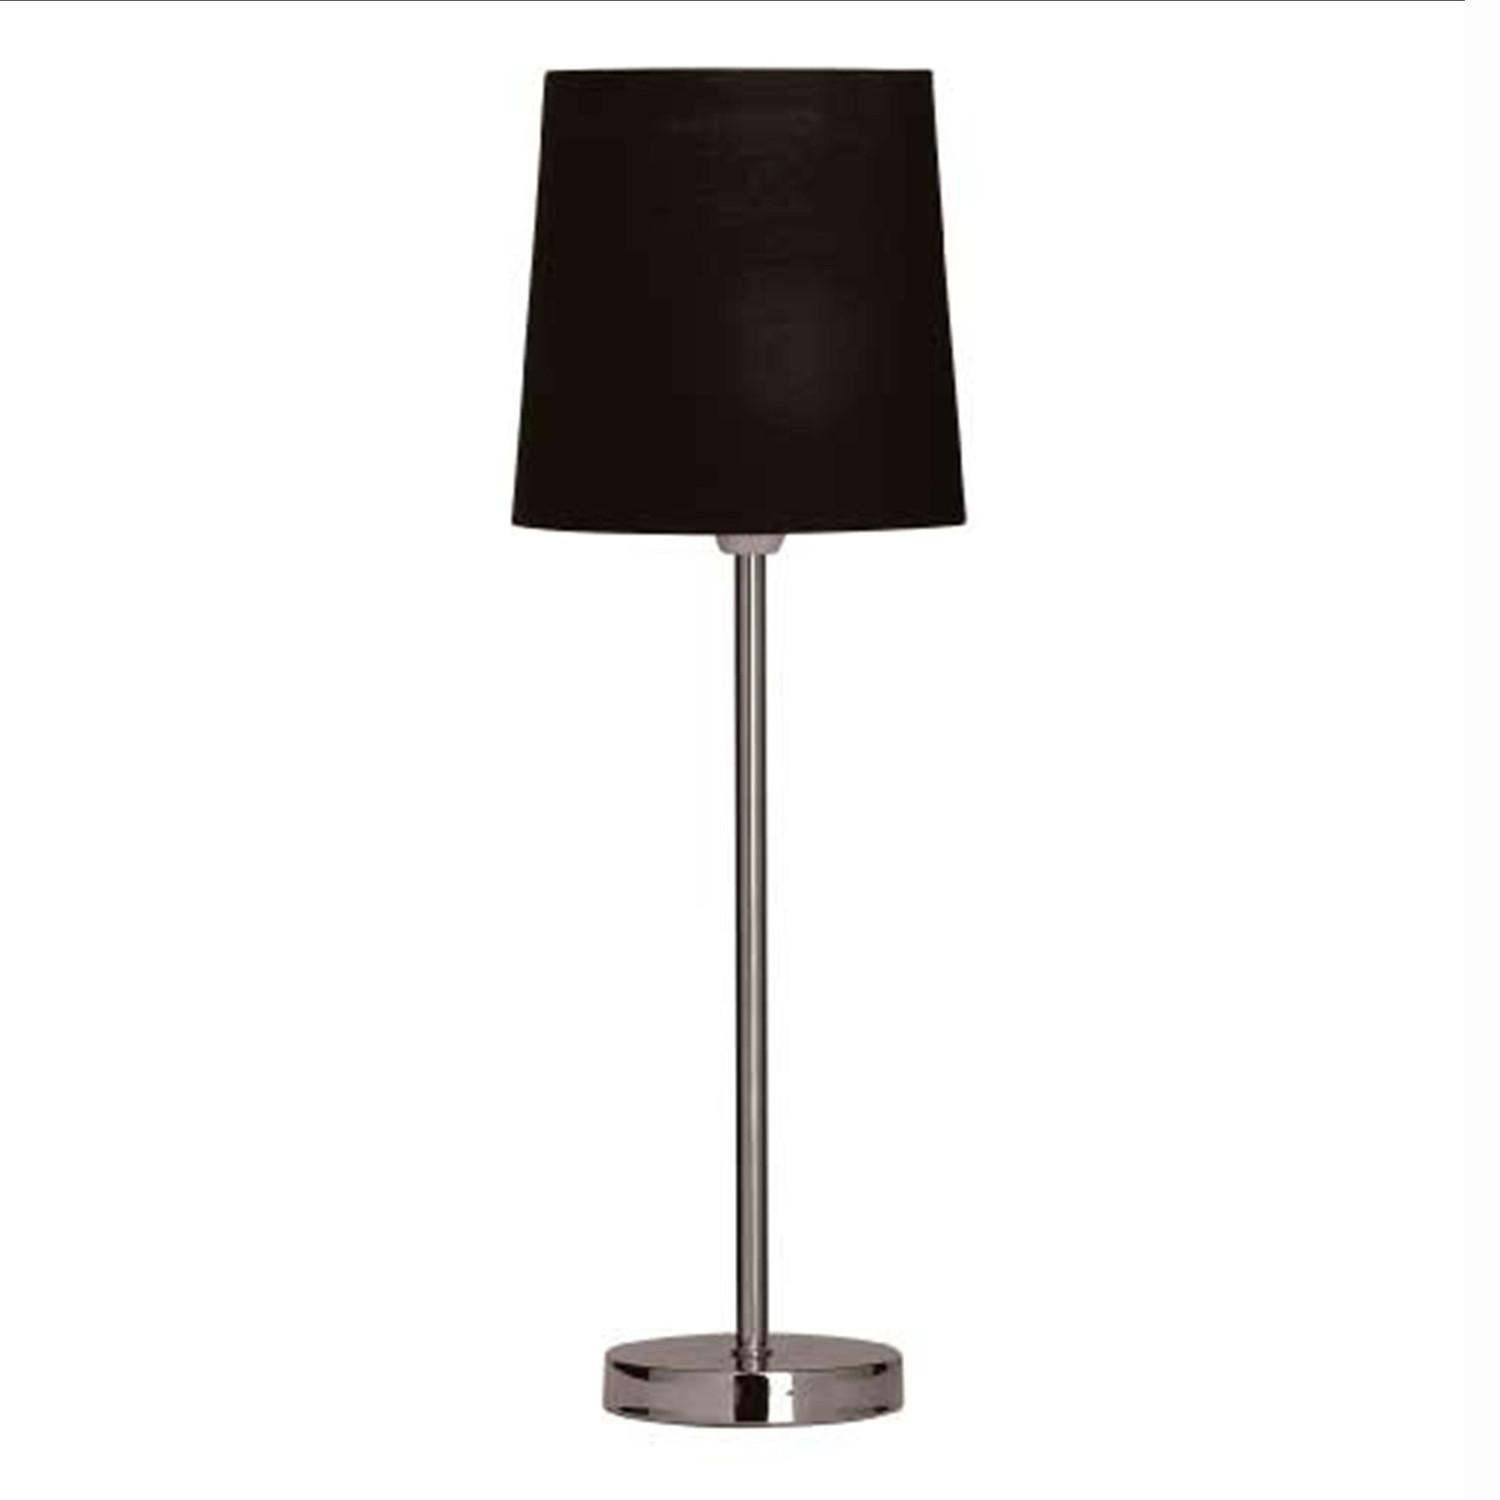 Halogen Torchiere Floor Lamp Uquot Tall Model